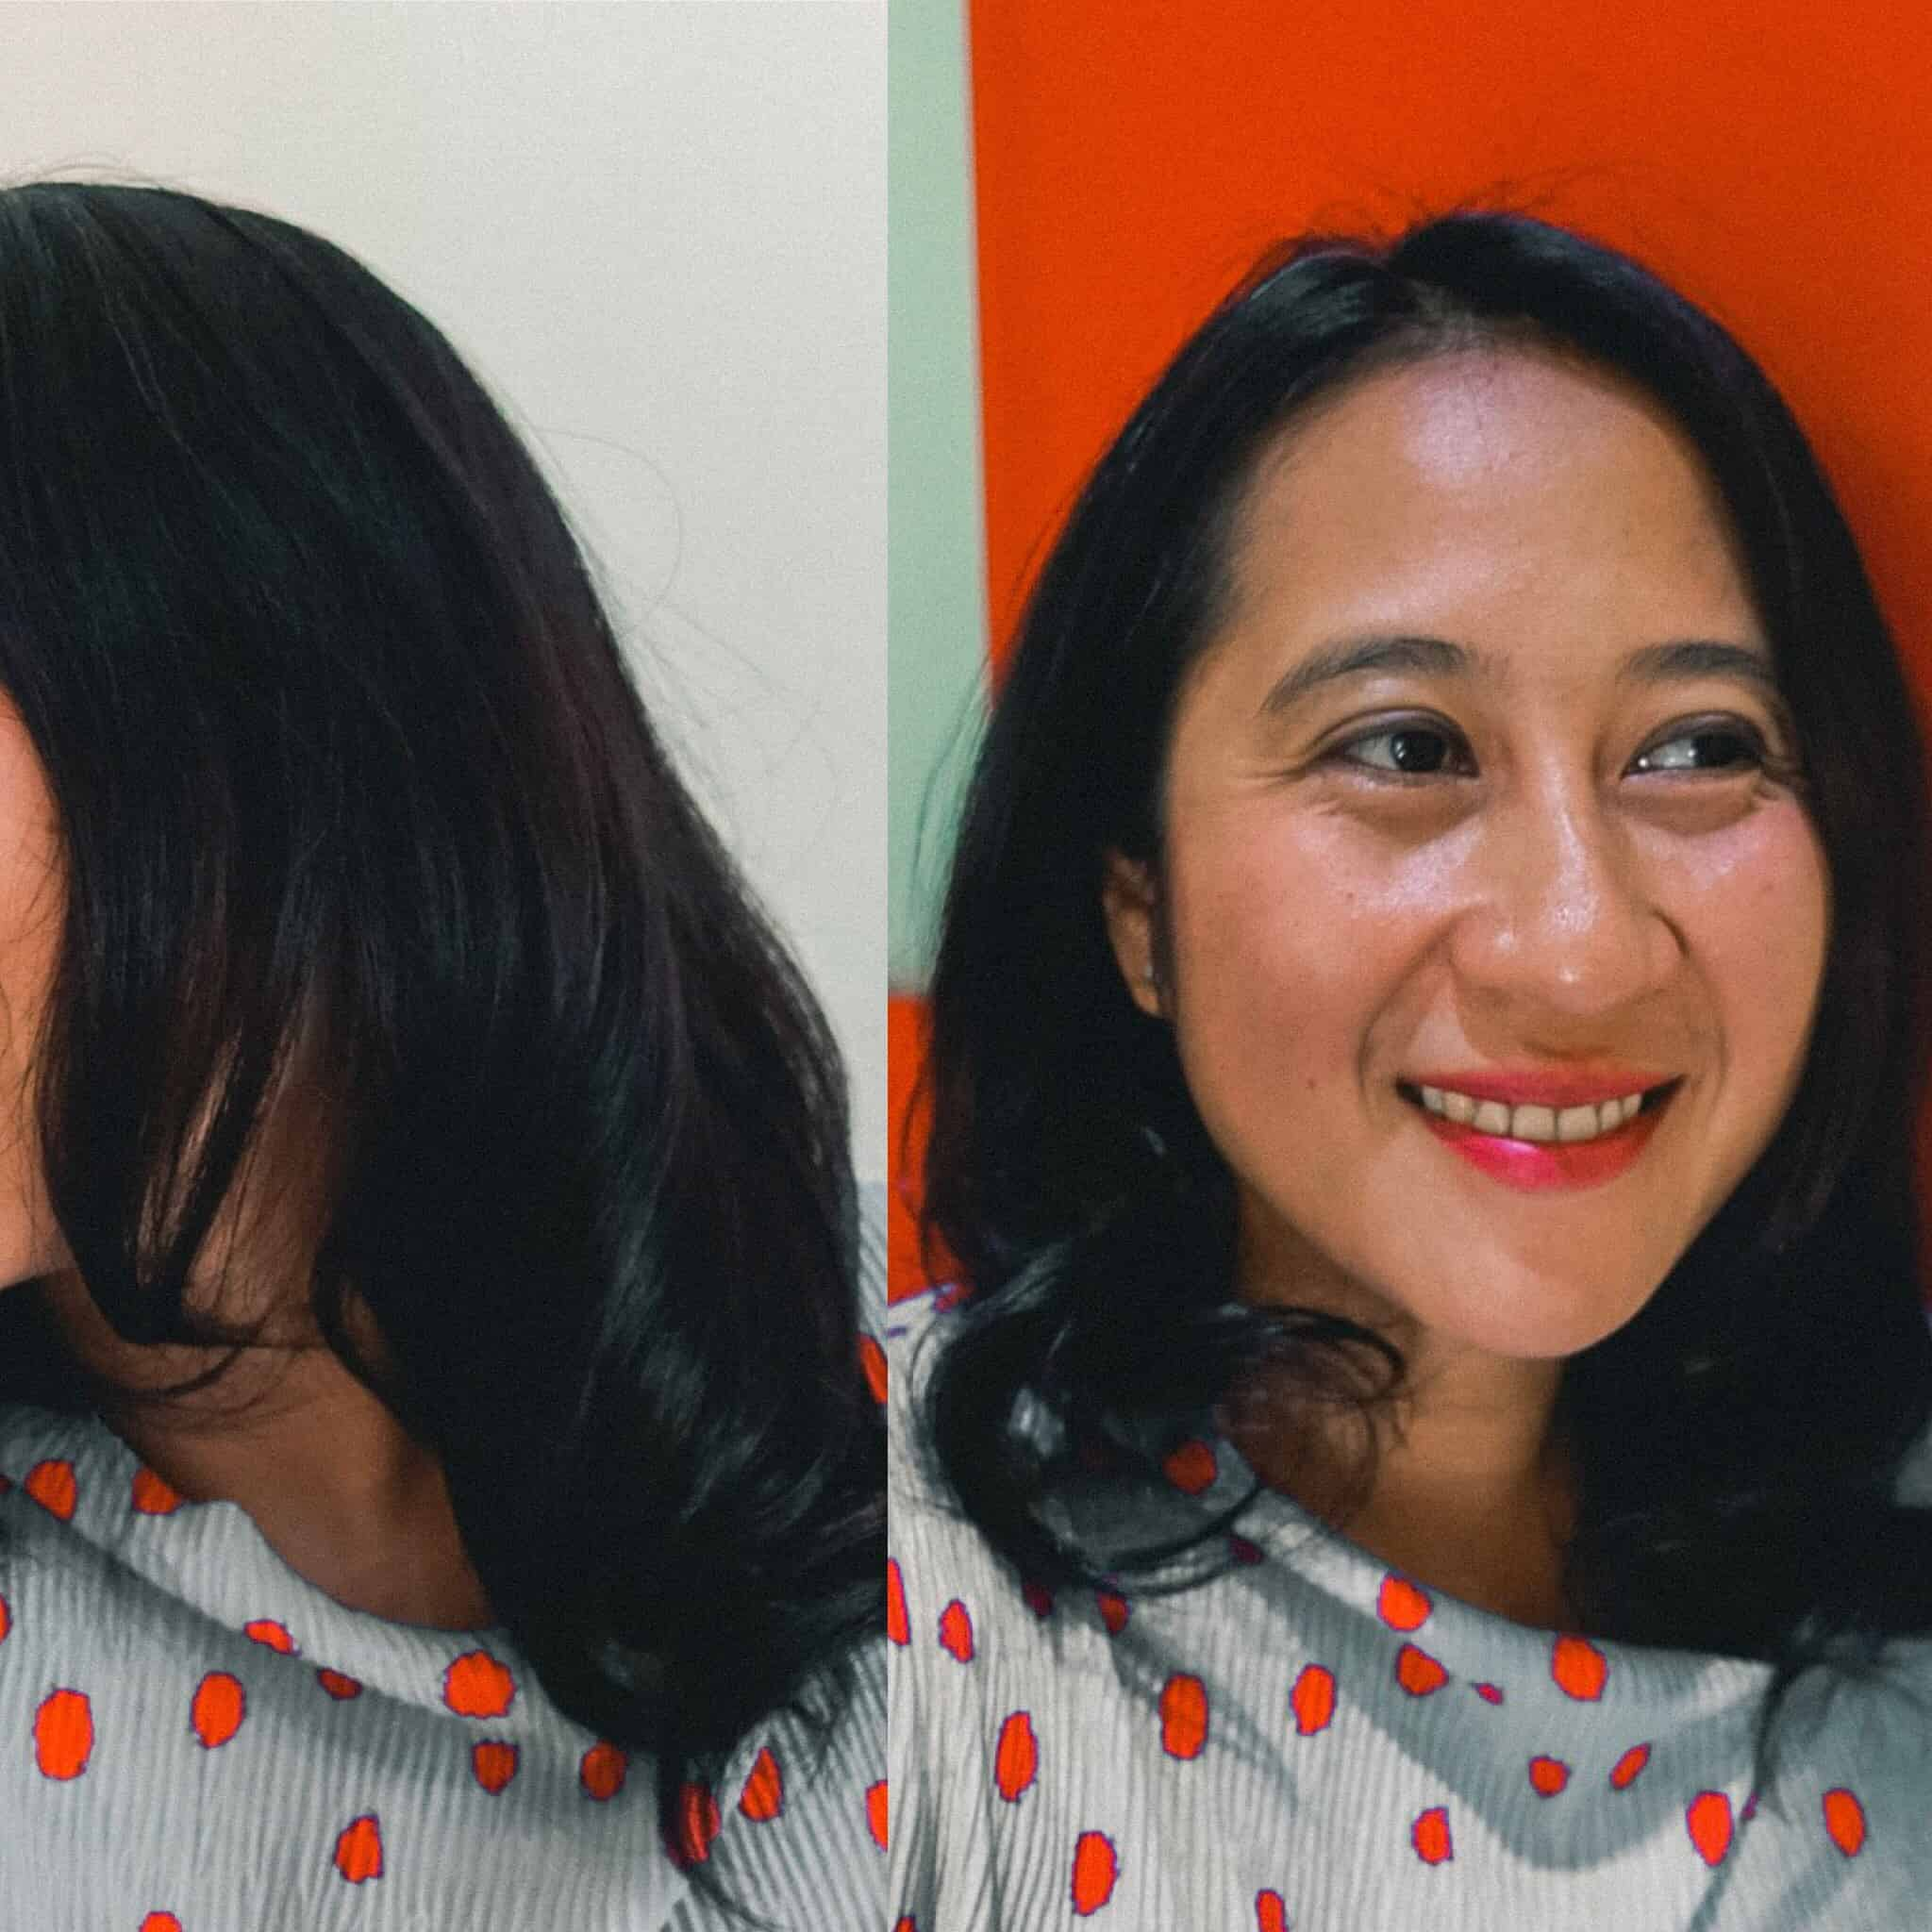 pavilion beauty salon jakarta cempaka putih travelbeib review 2018 hair blow